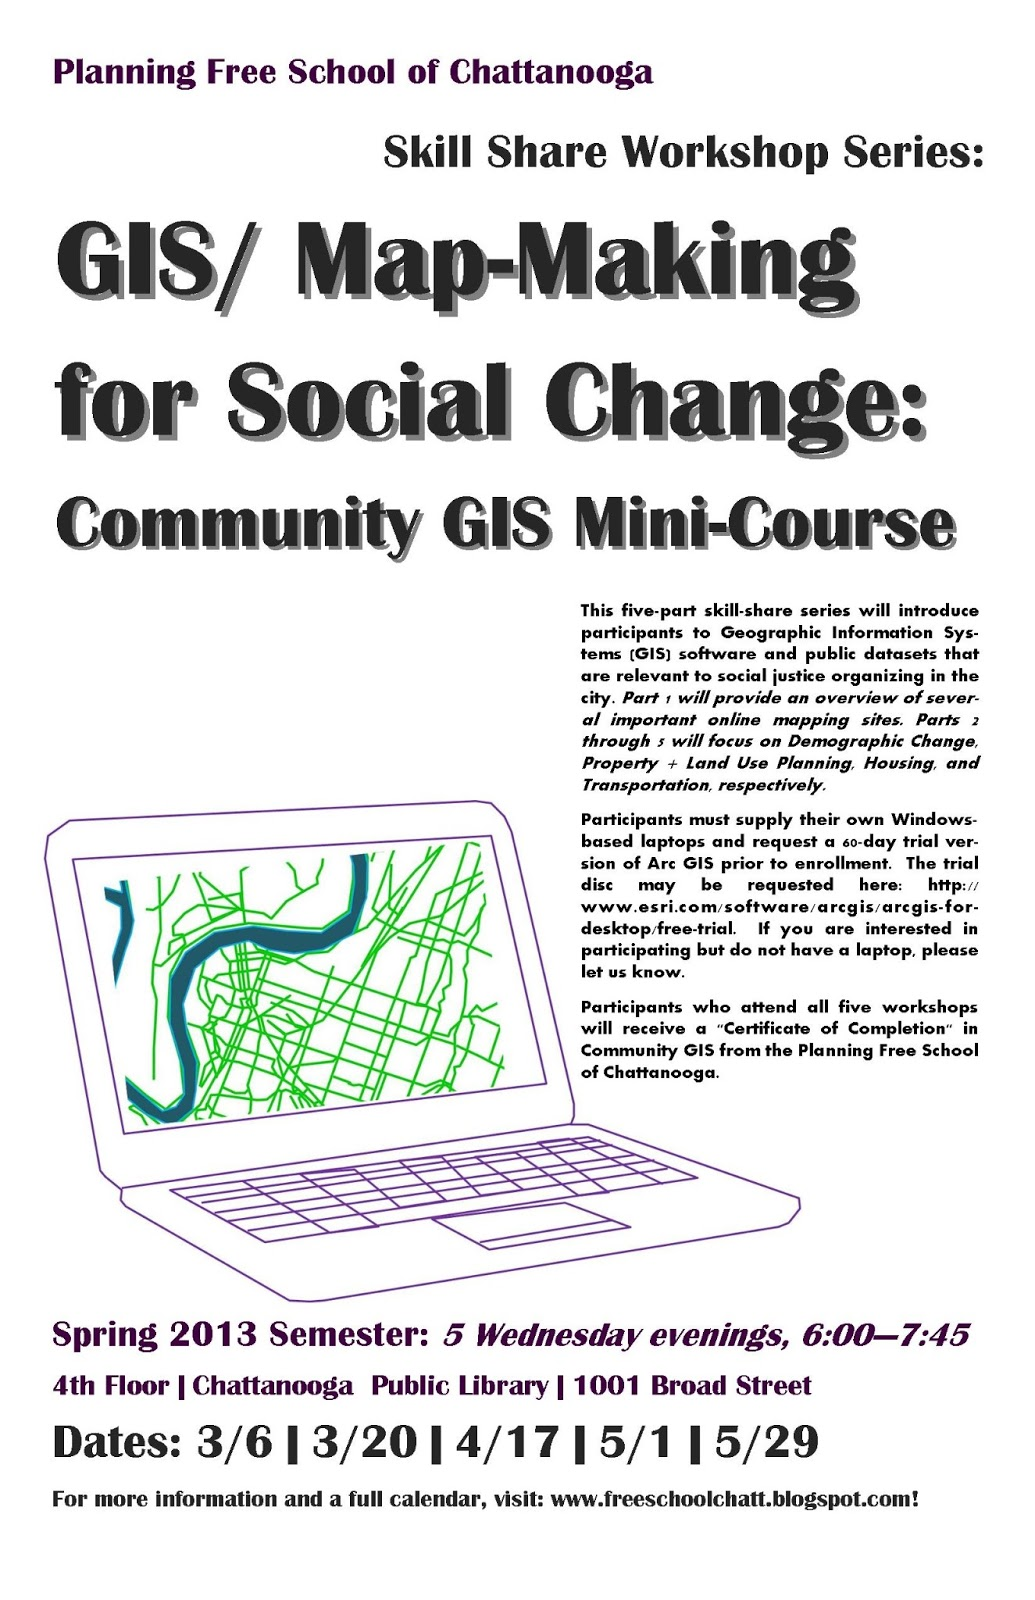 Pfs Gis Mapmaking Mini Course Starts This Evening At 6pm